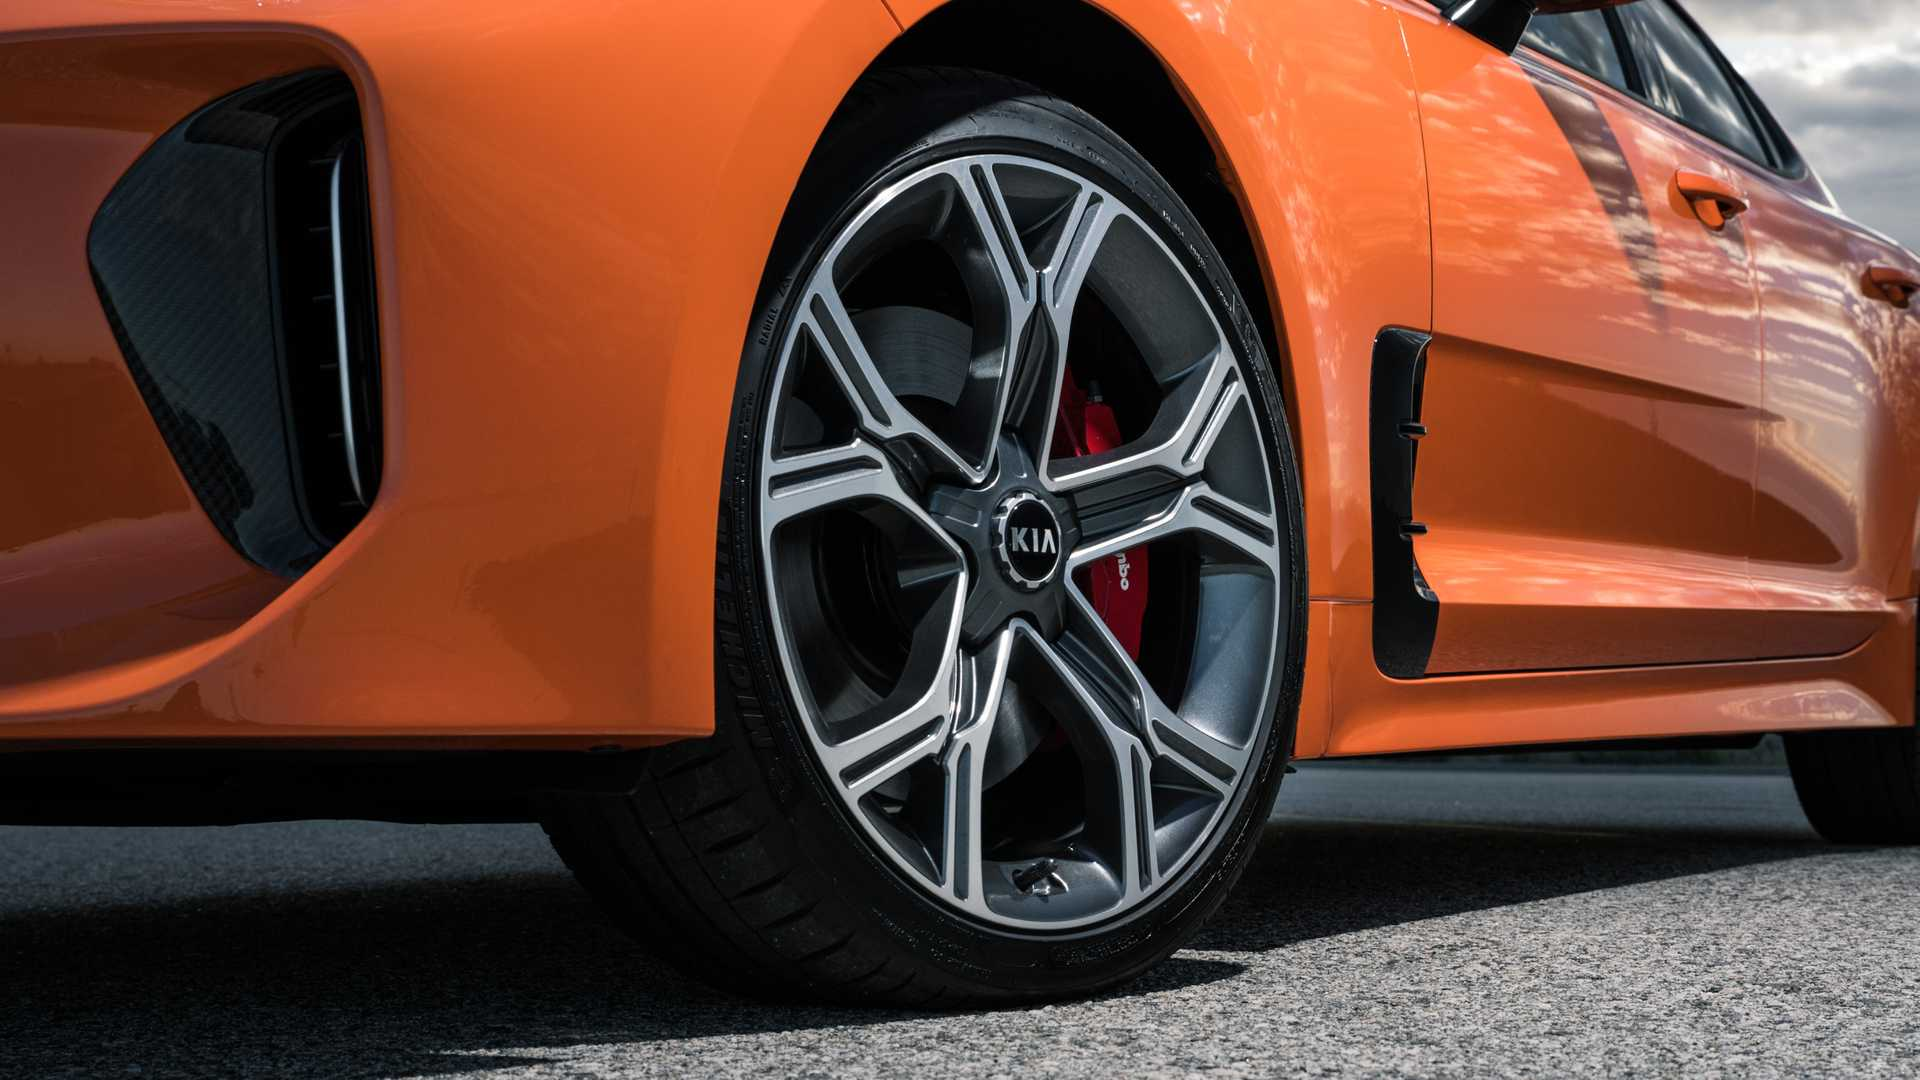 2020 Kia Stinger GTS Wheel Wallpaper (7)